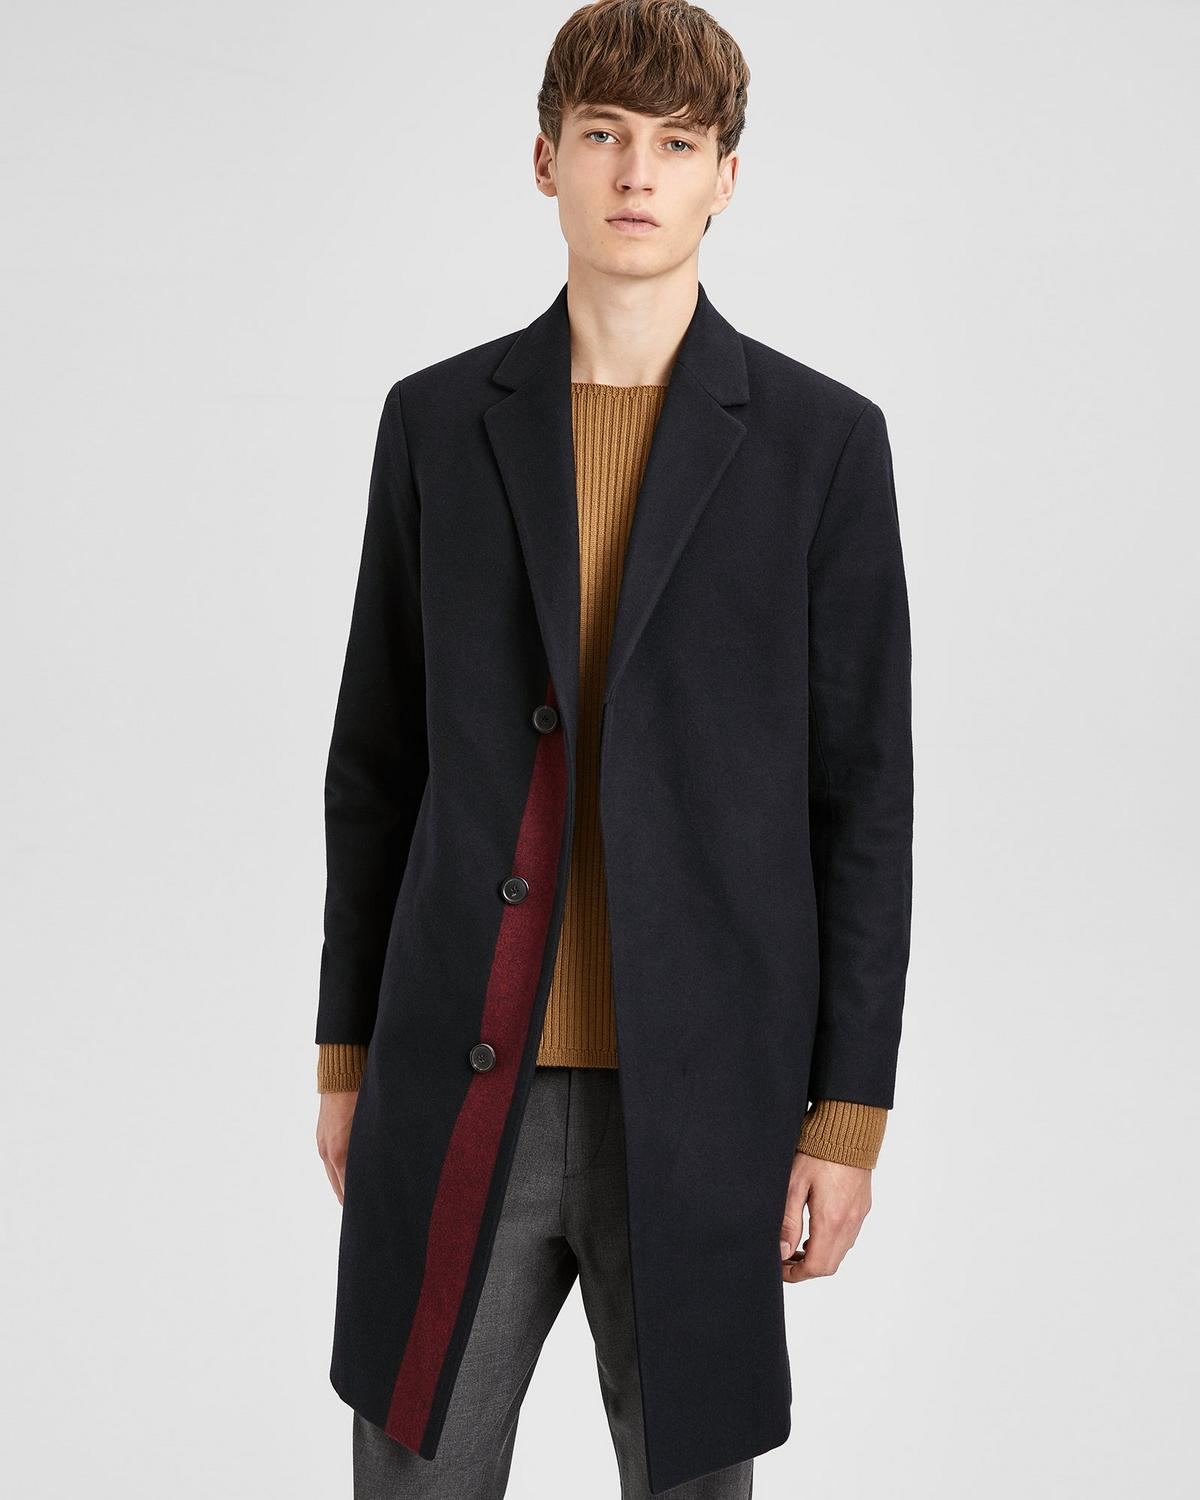 Theory  WOOL STRIPED TAILORED TOP COAT